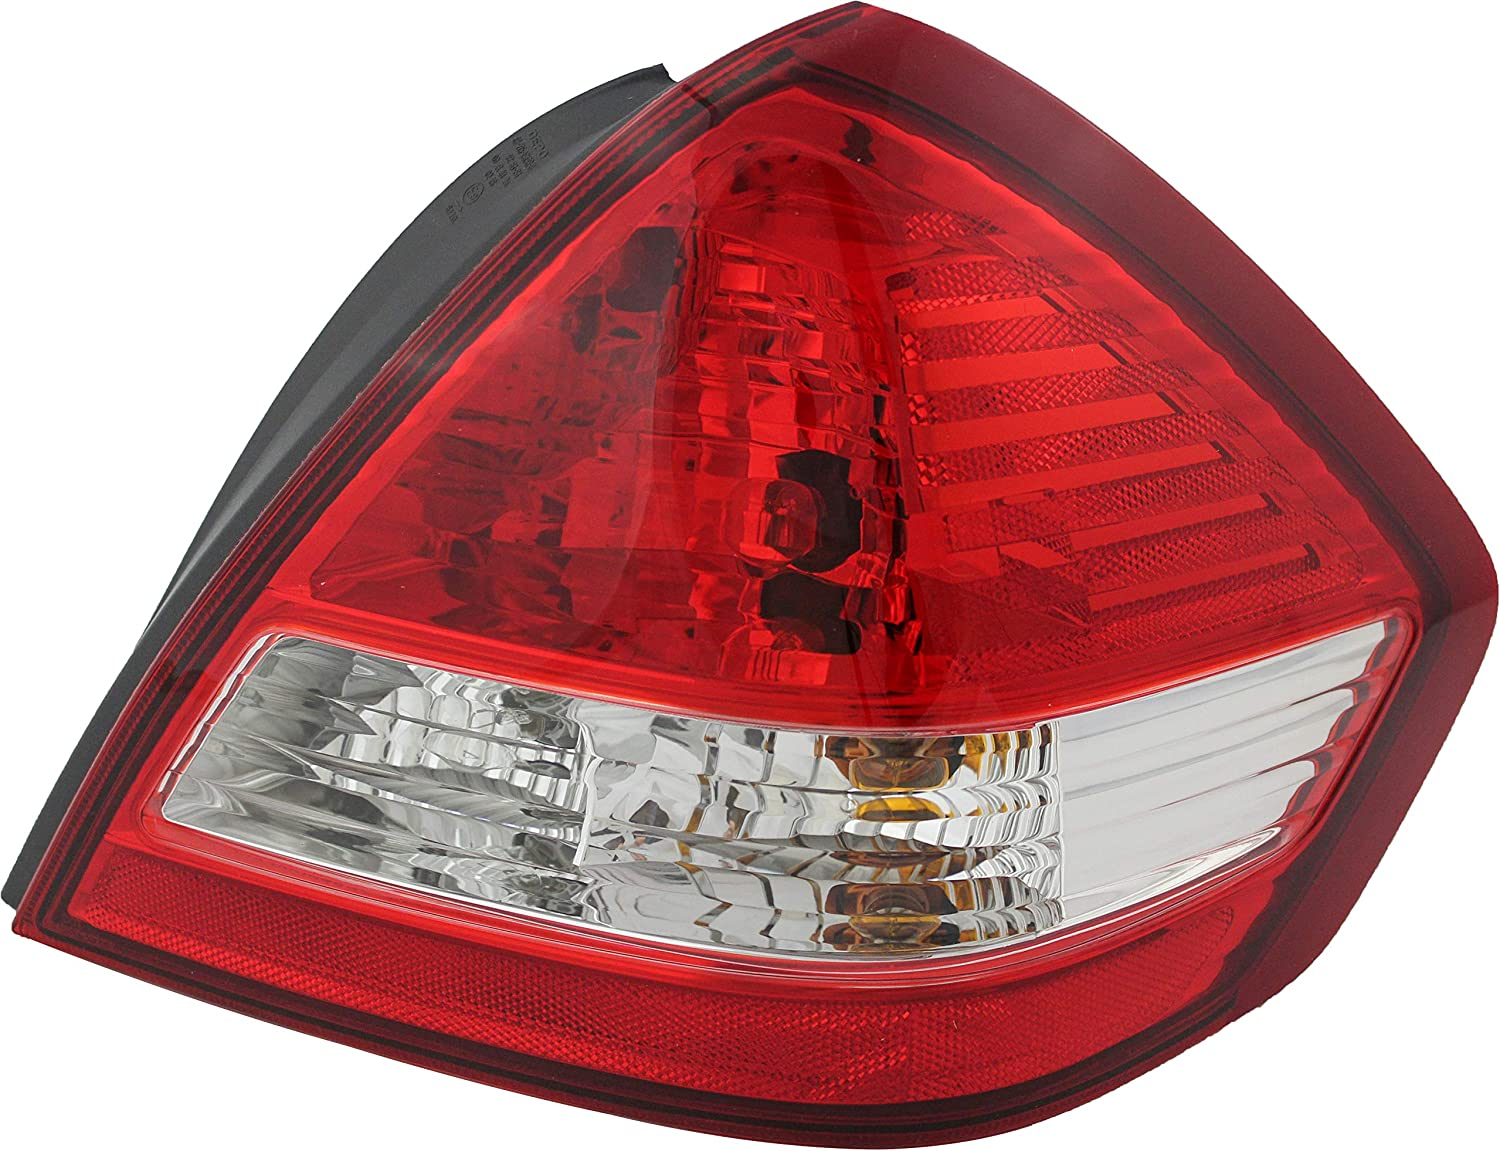 JP 大特価 Auto Outer Tail Light Compatible With Versa Nissan Sedan 2007 優先配送